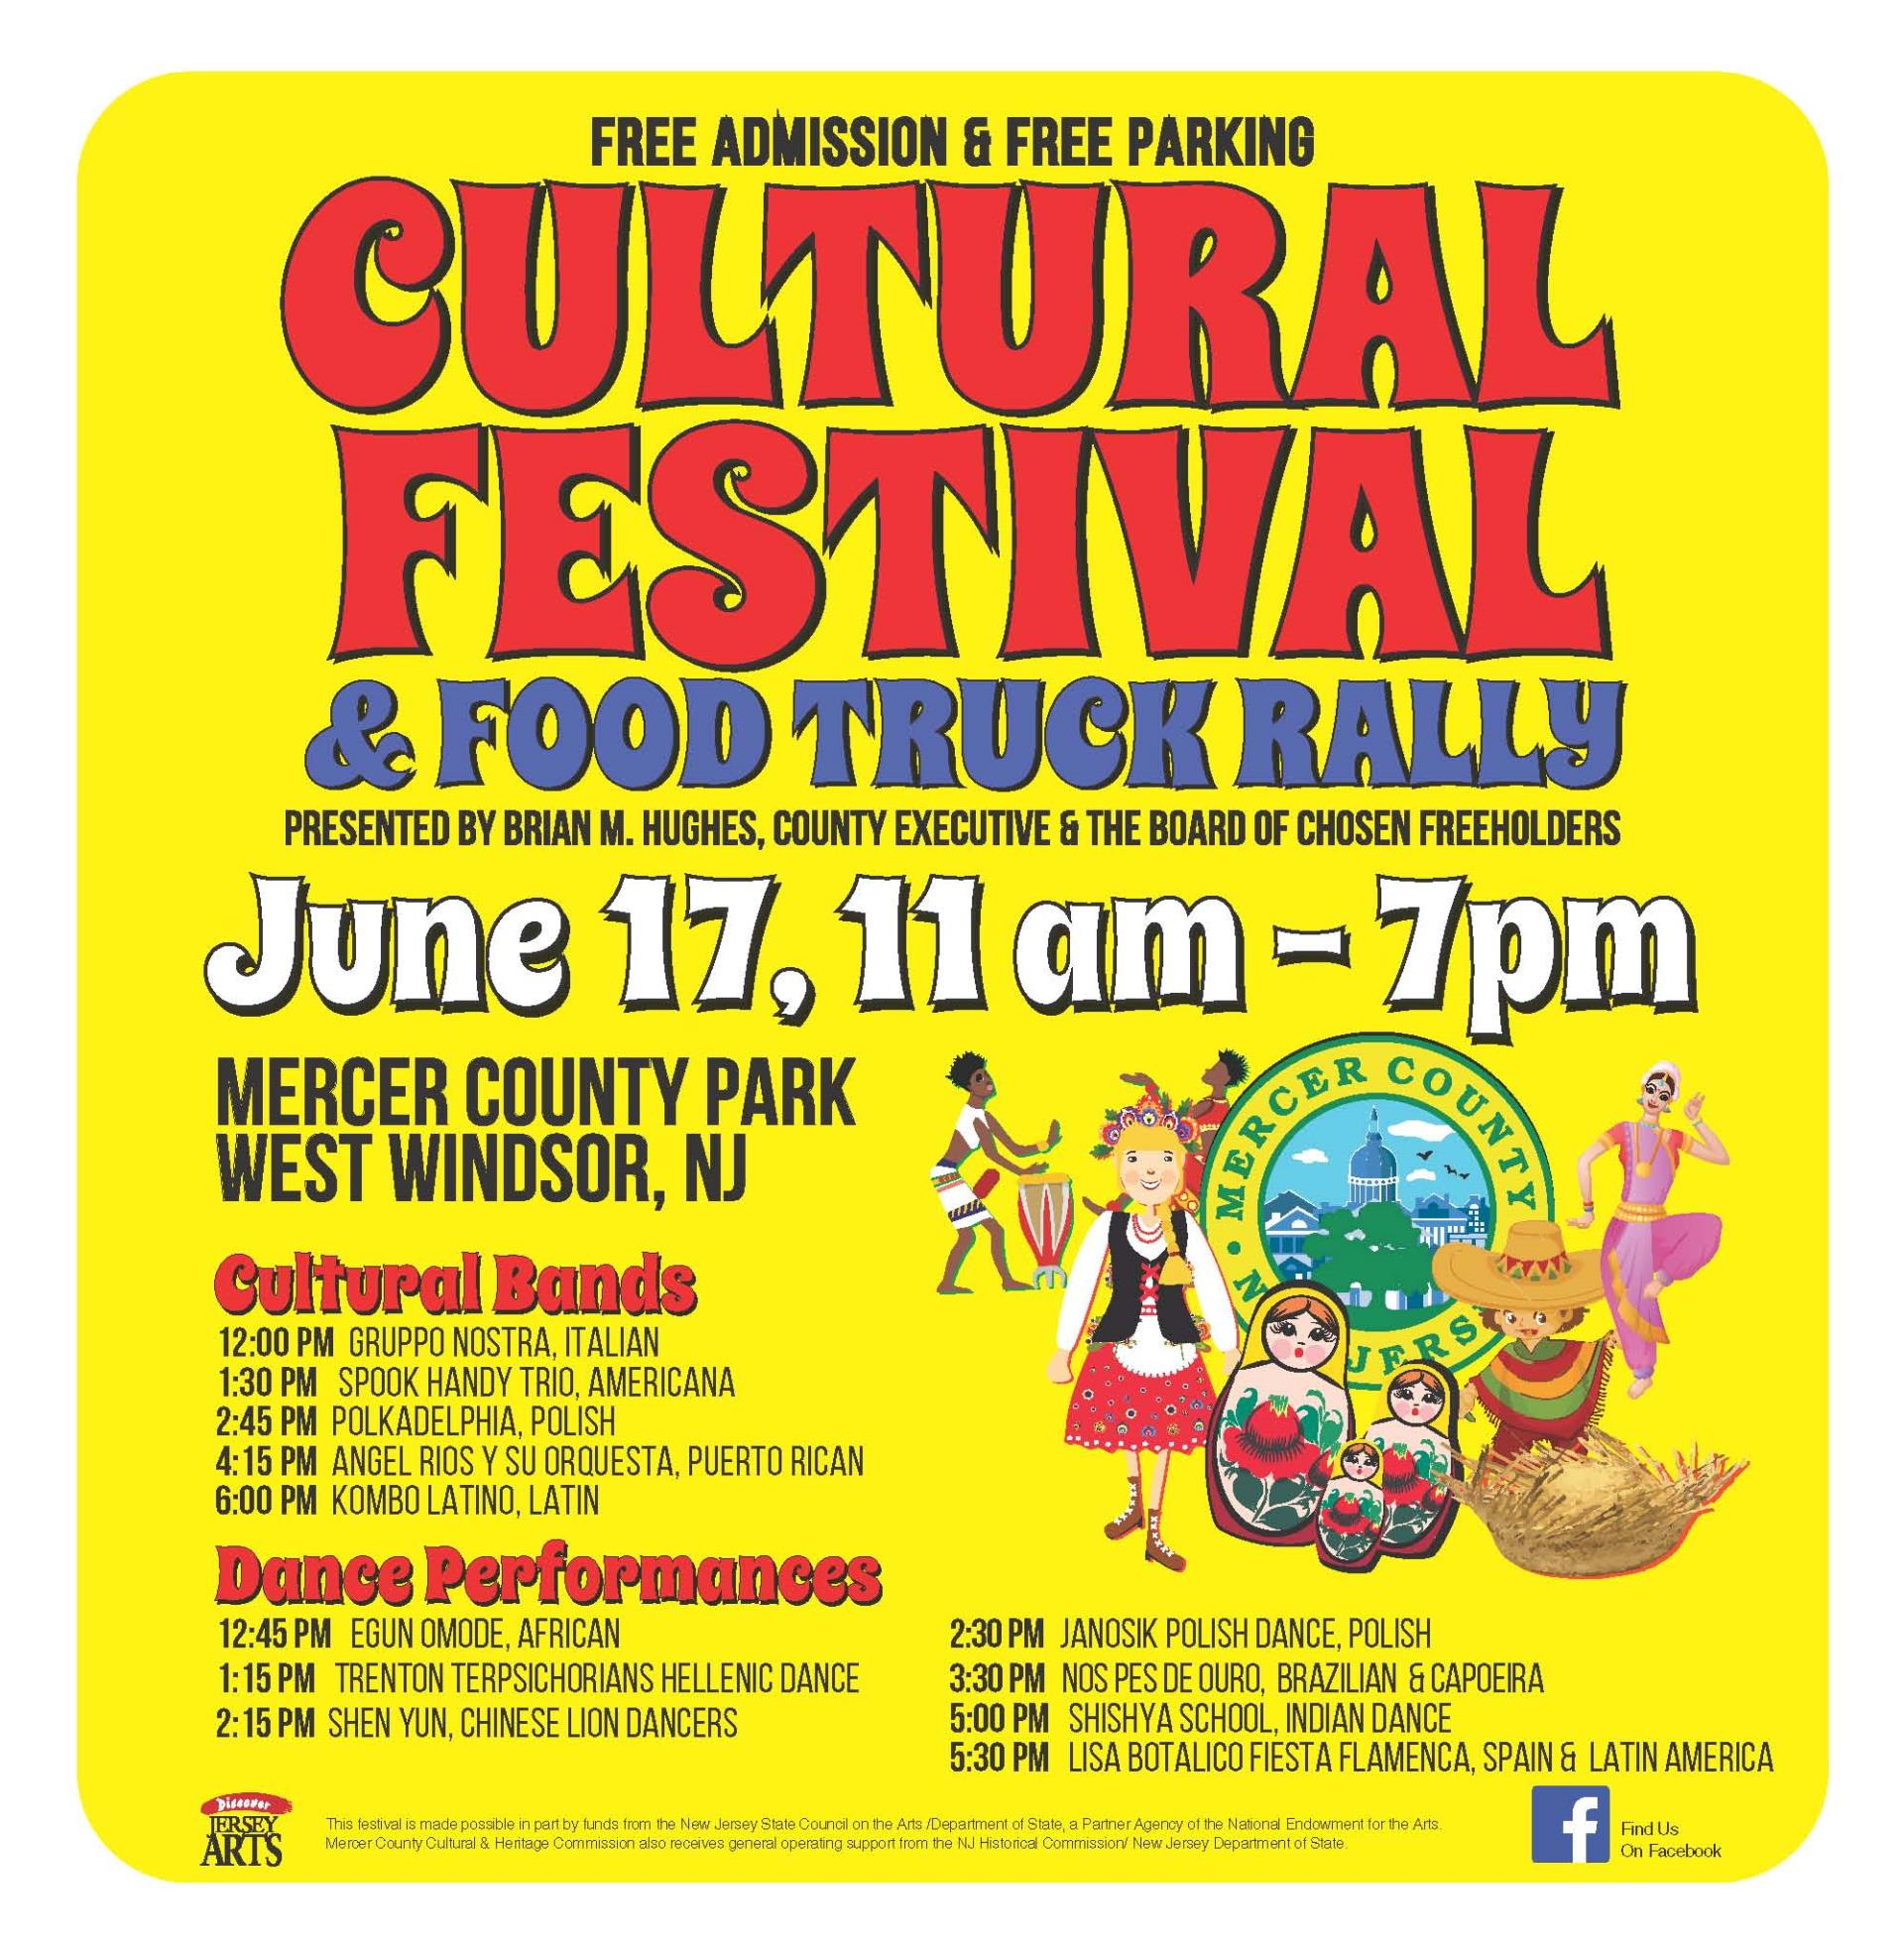 2017 Cultural Festival Flyer - Latino News (schedule)_v2